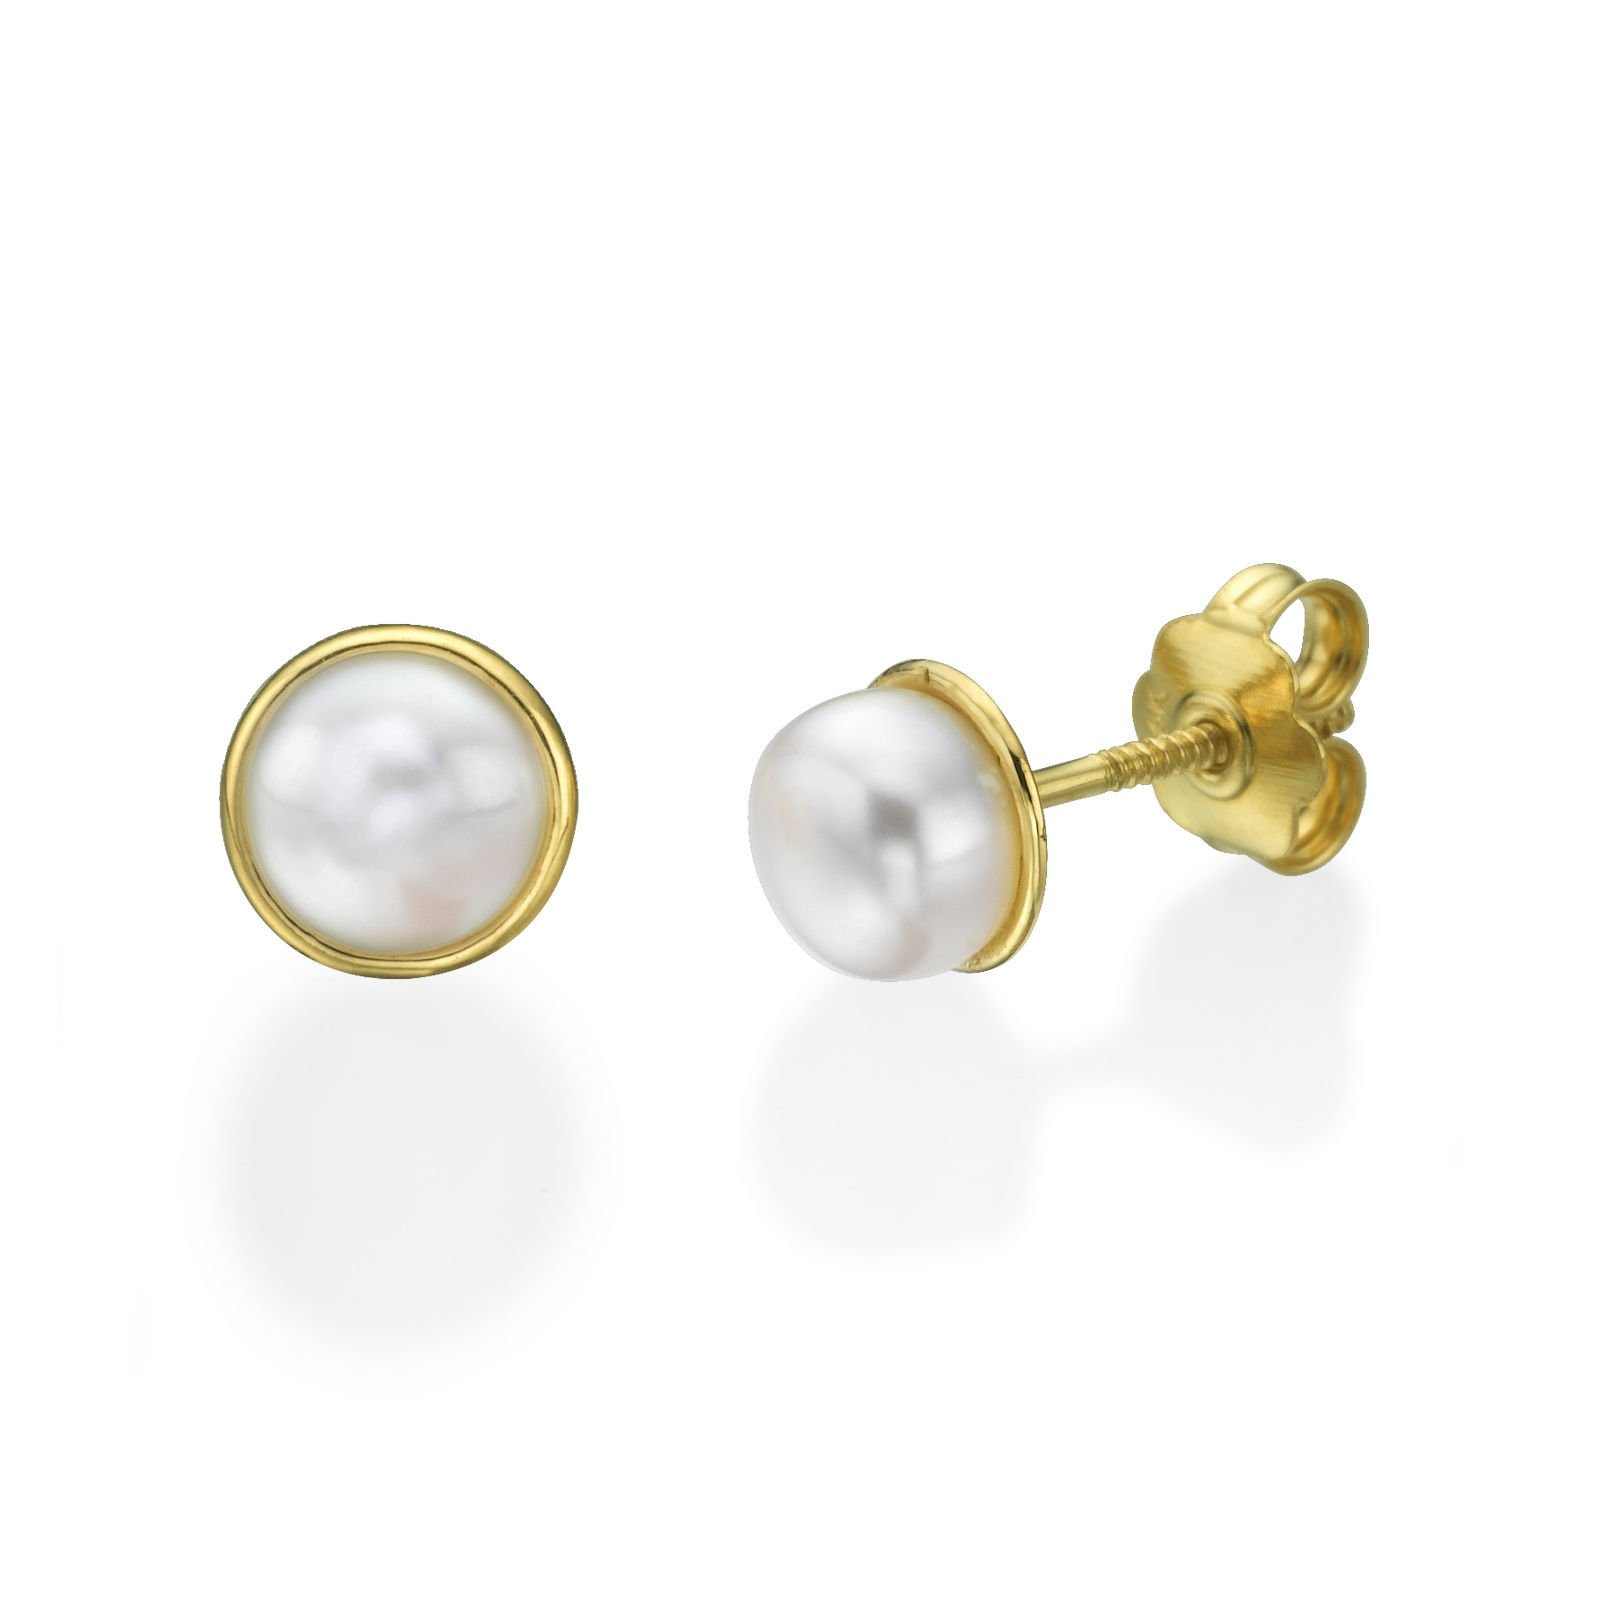 14K Fine Yellow Gold Pearls Round Screw Back Stud Earrings for Teens and Women Children Gift Kids